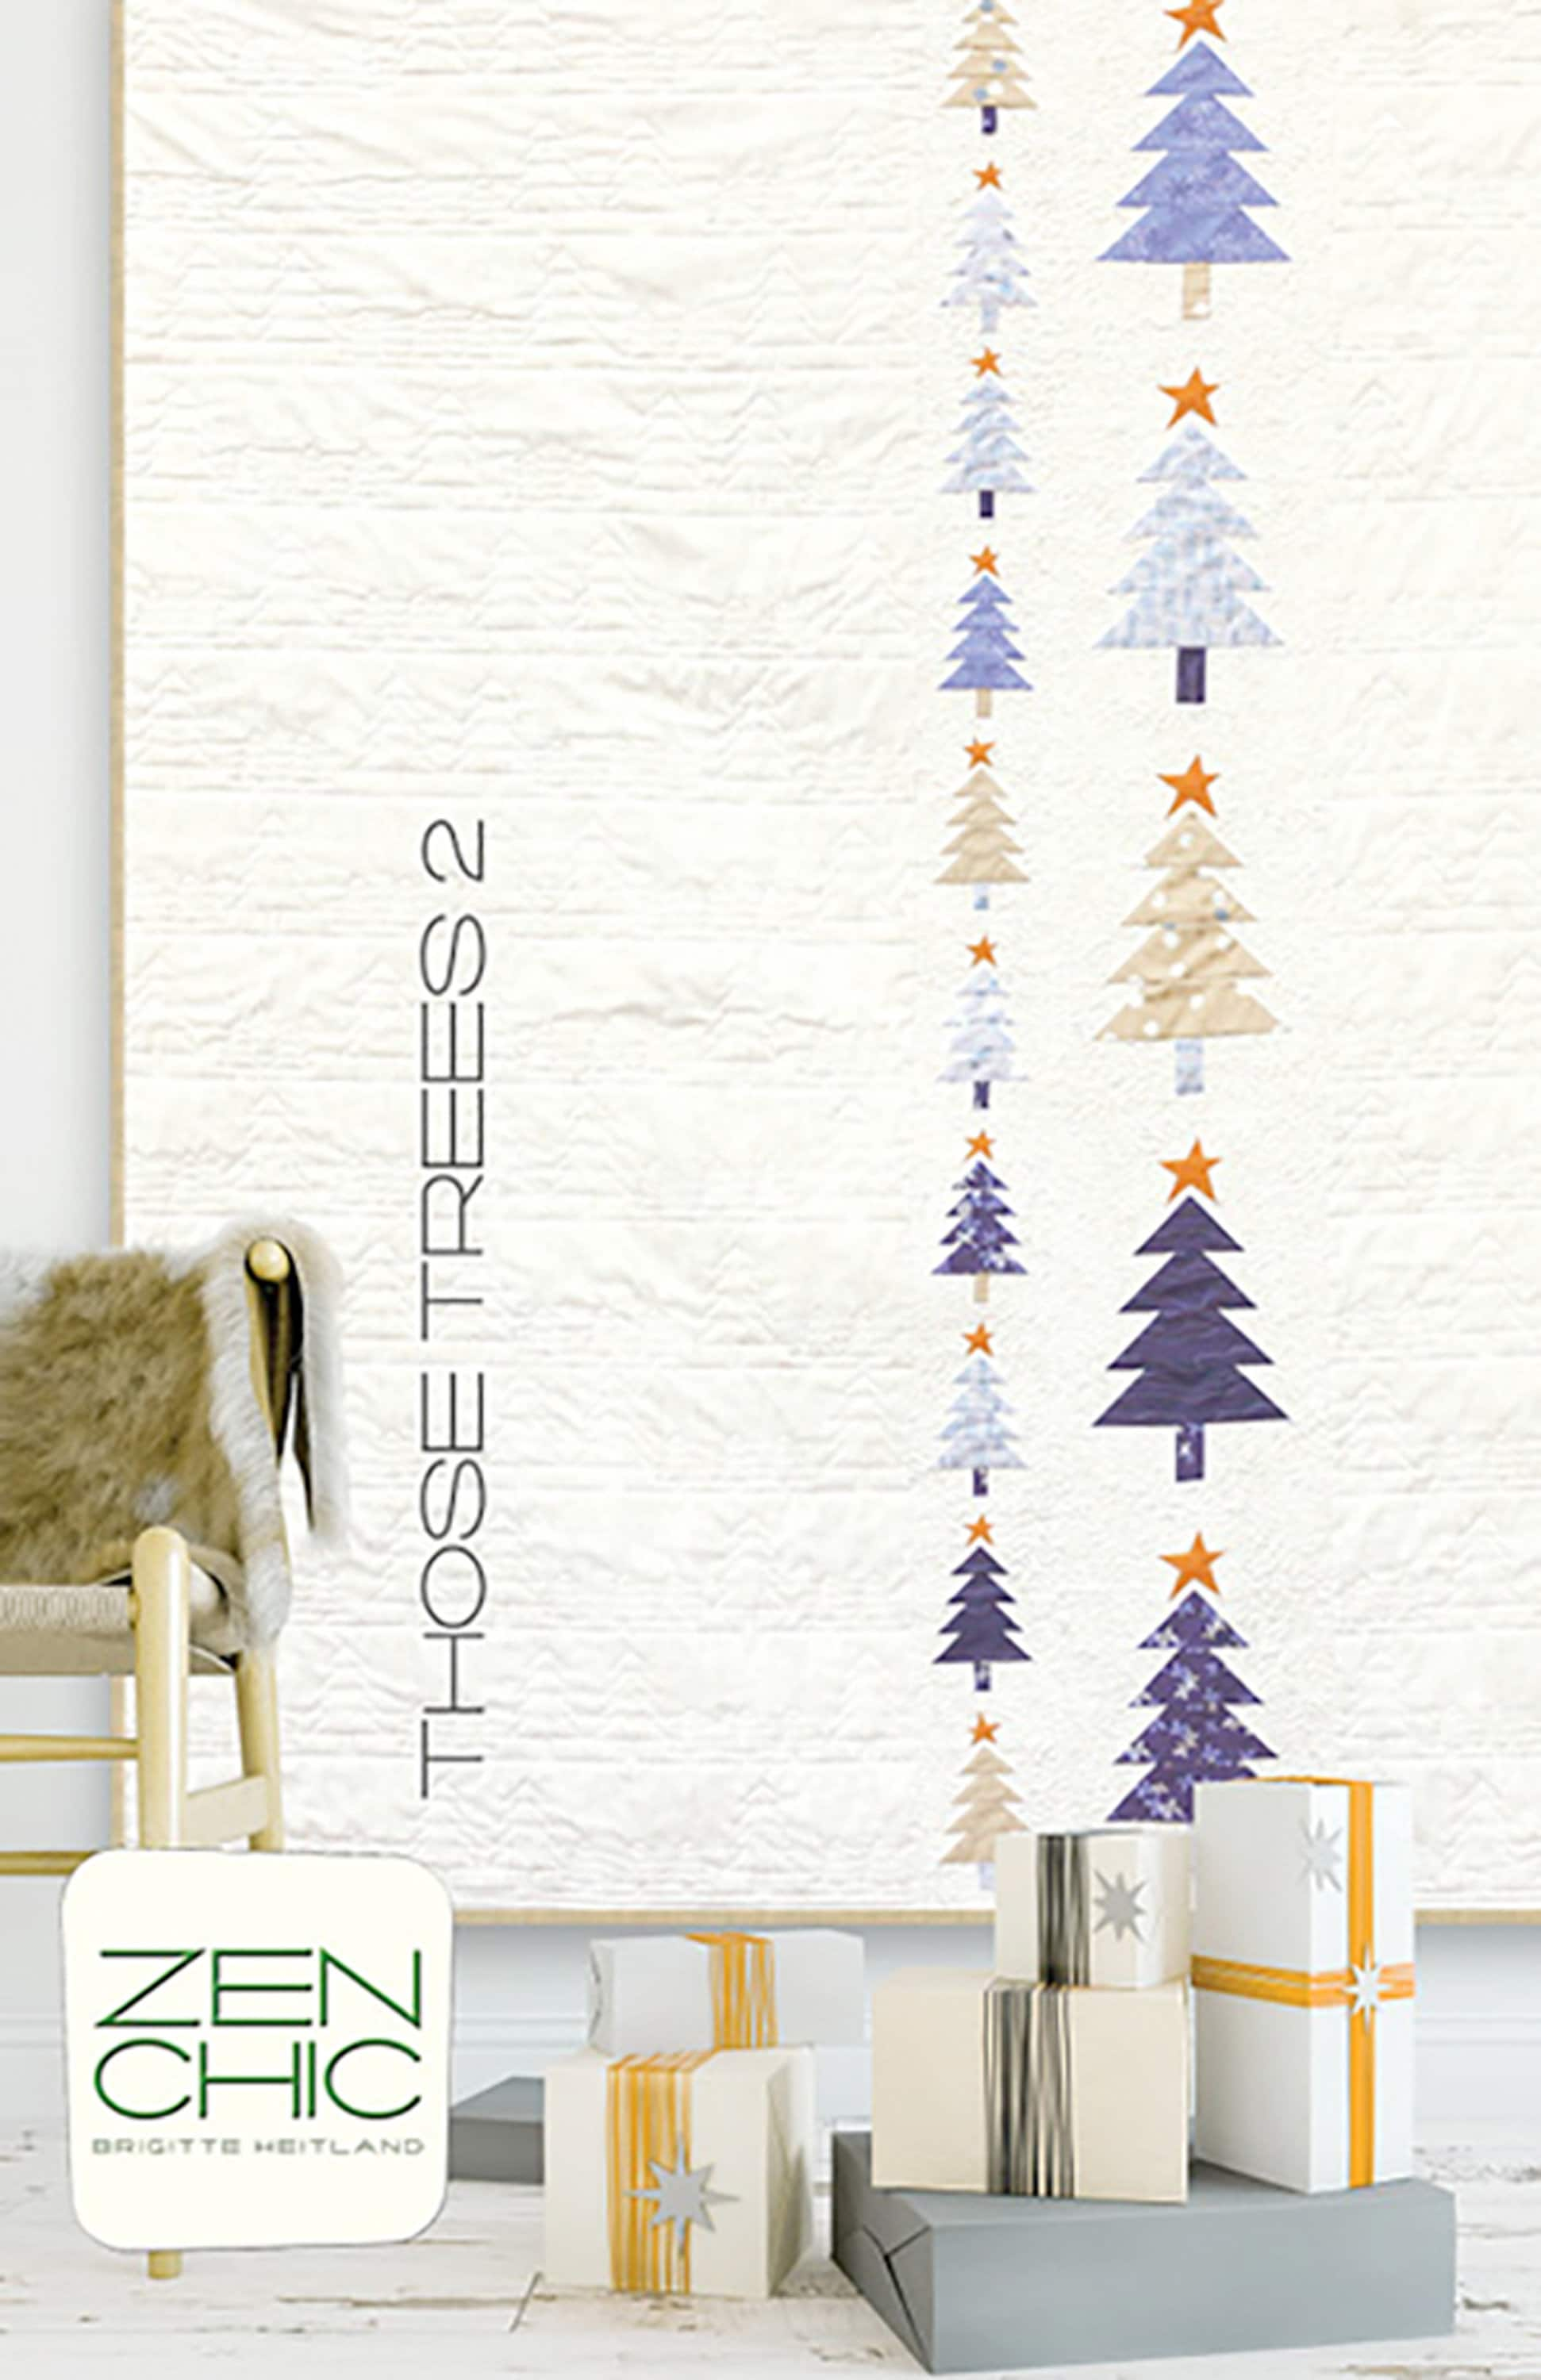 Those Trees 2 Quilt Pattern Modern Christmas Tree Quilt Etsy